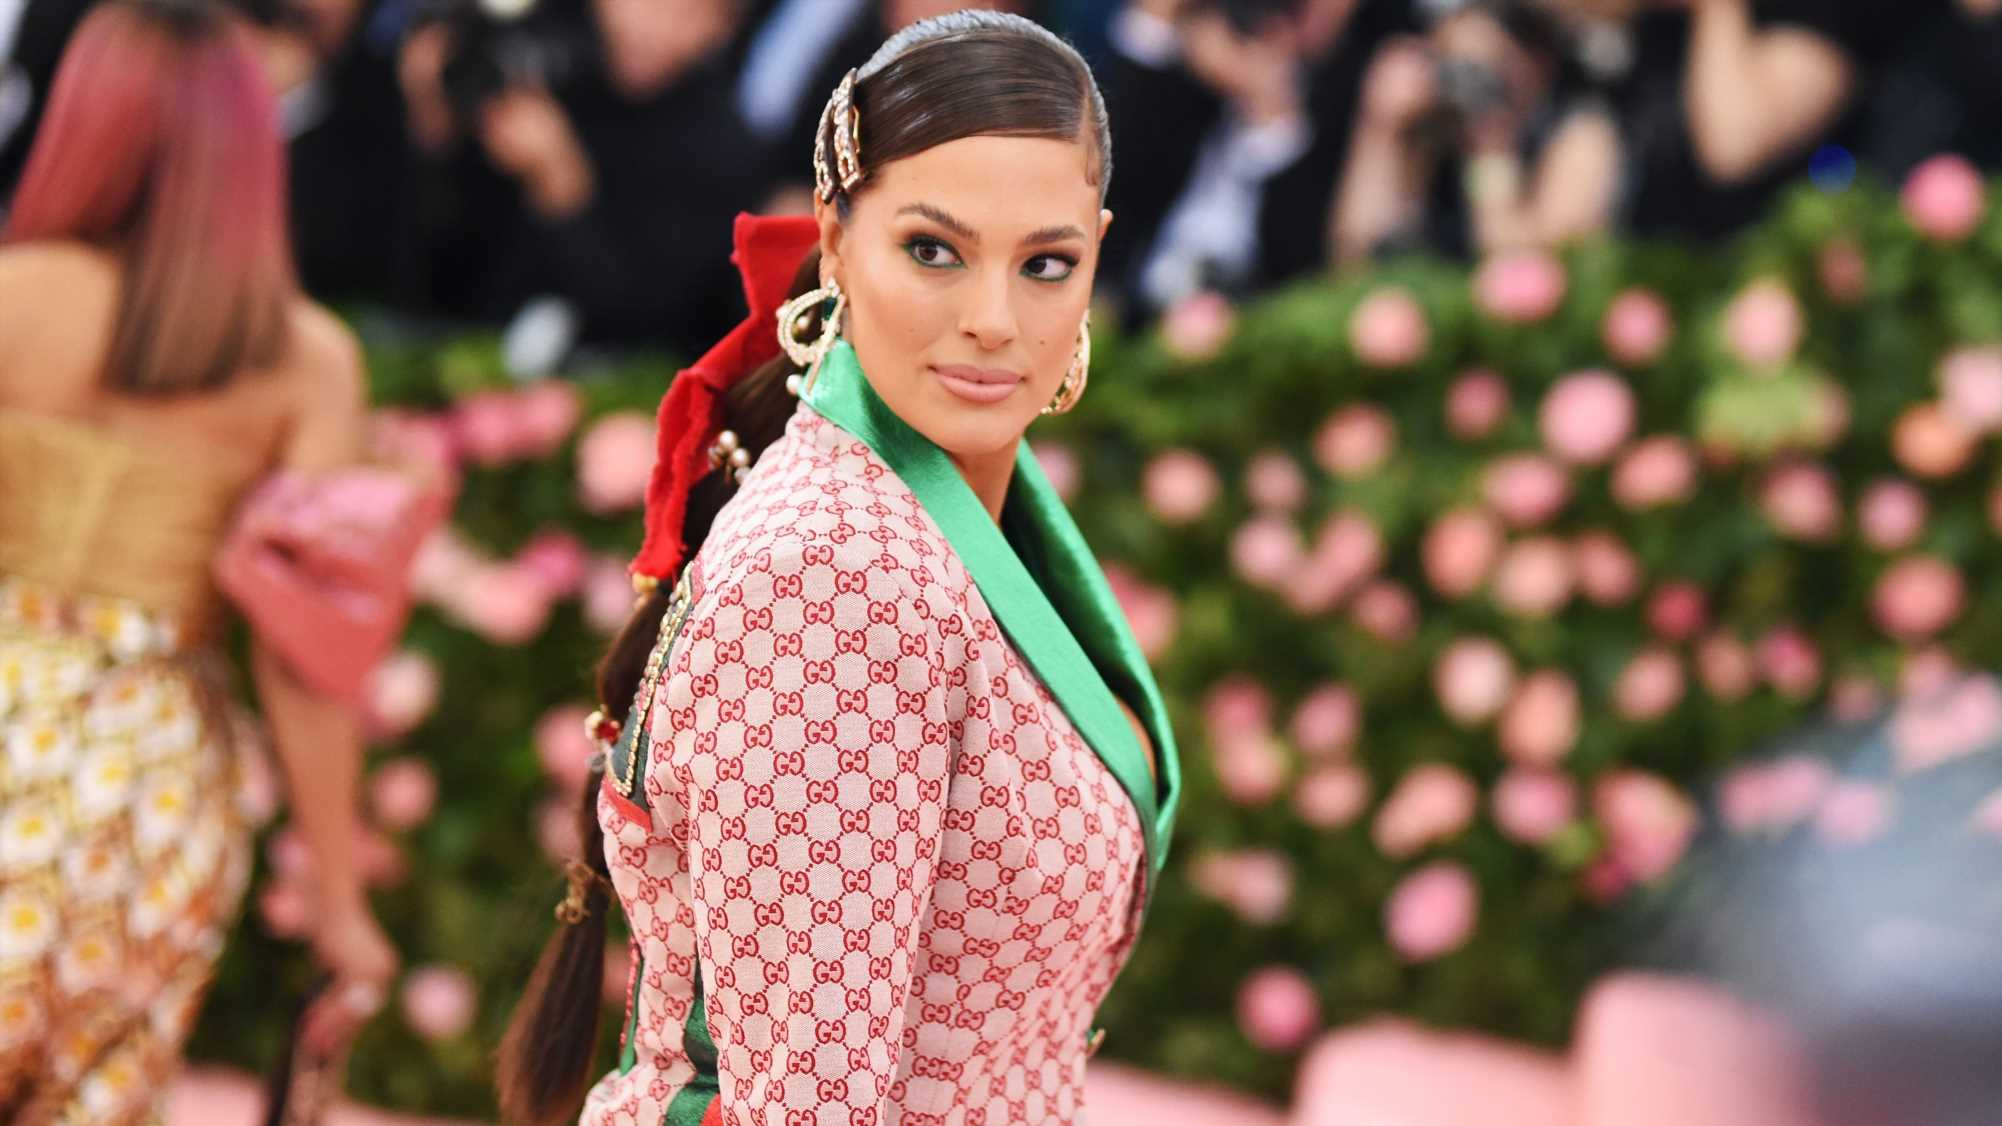 Ashley Graham Is Glowing in This Semi-Nude Pregnancy Pic